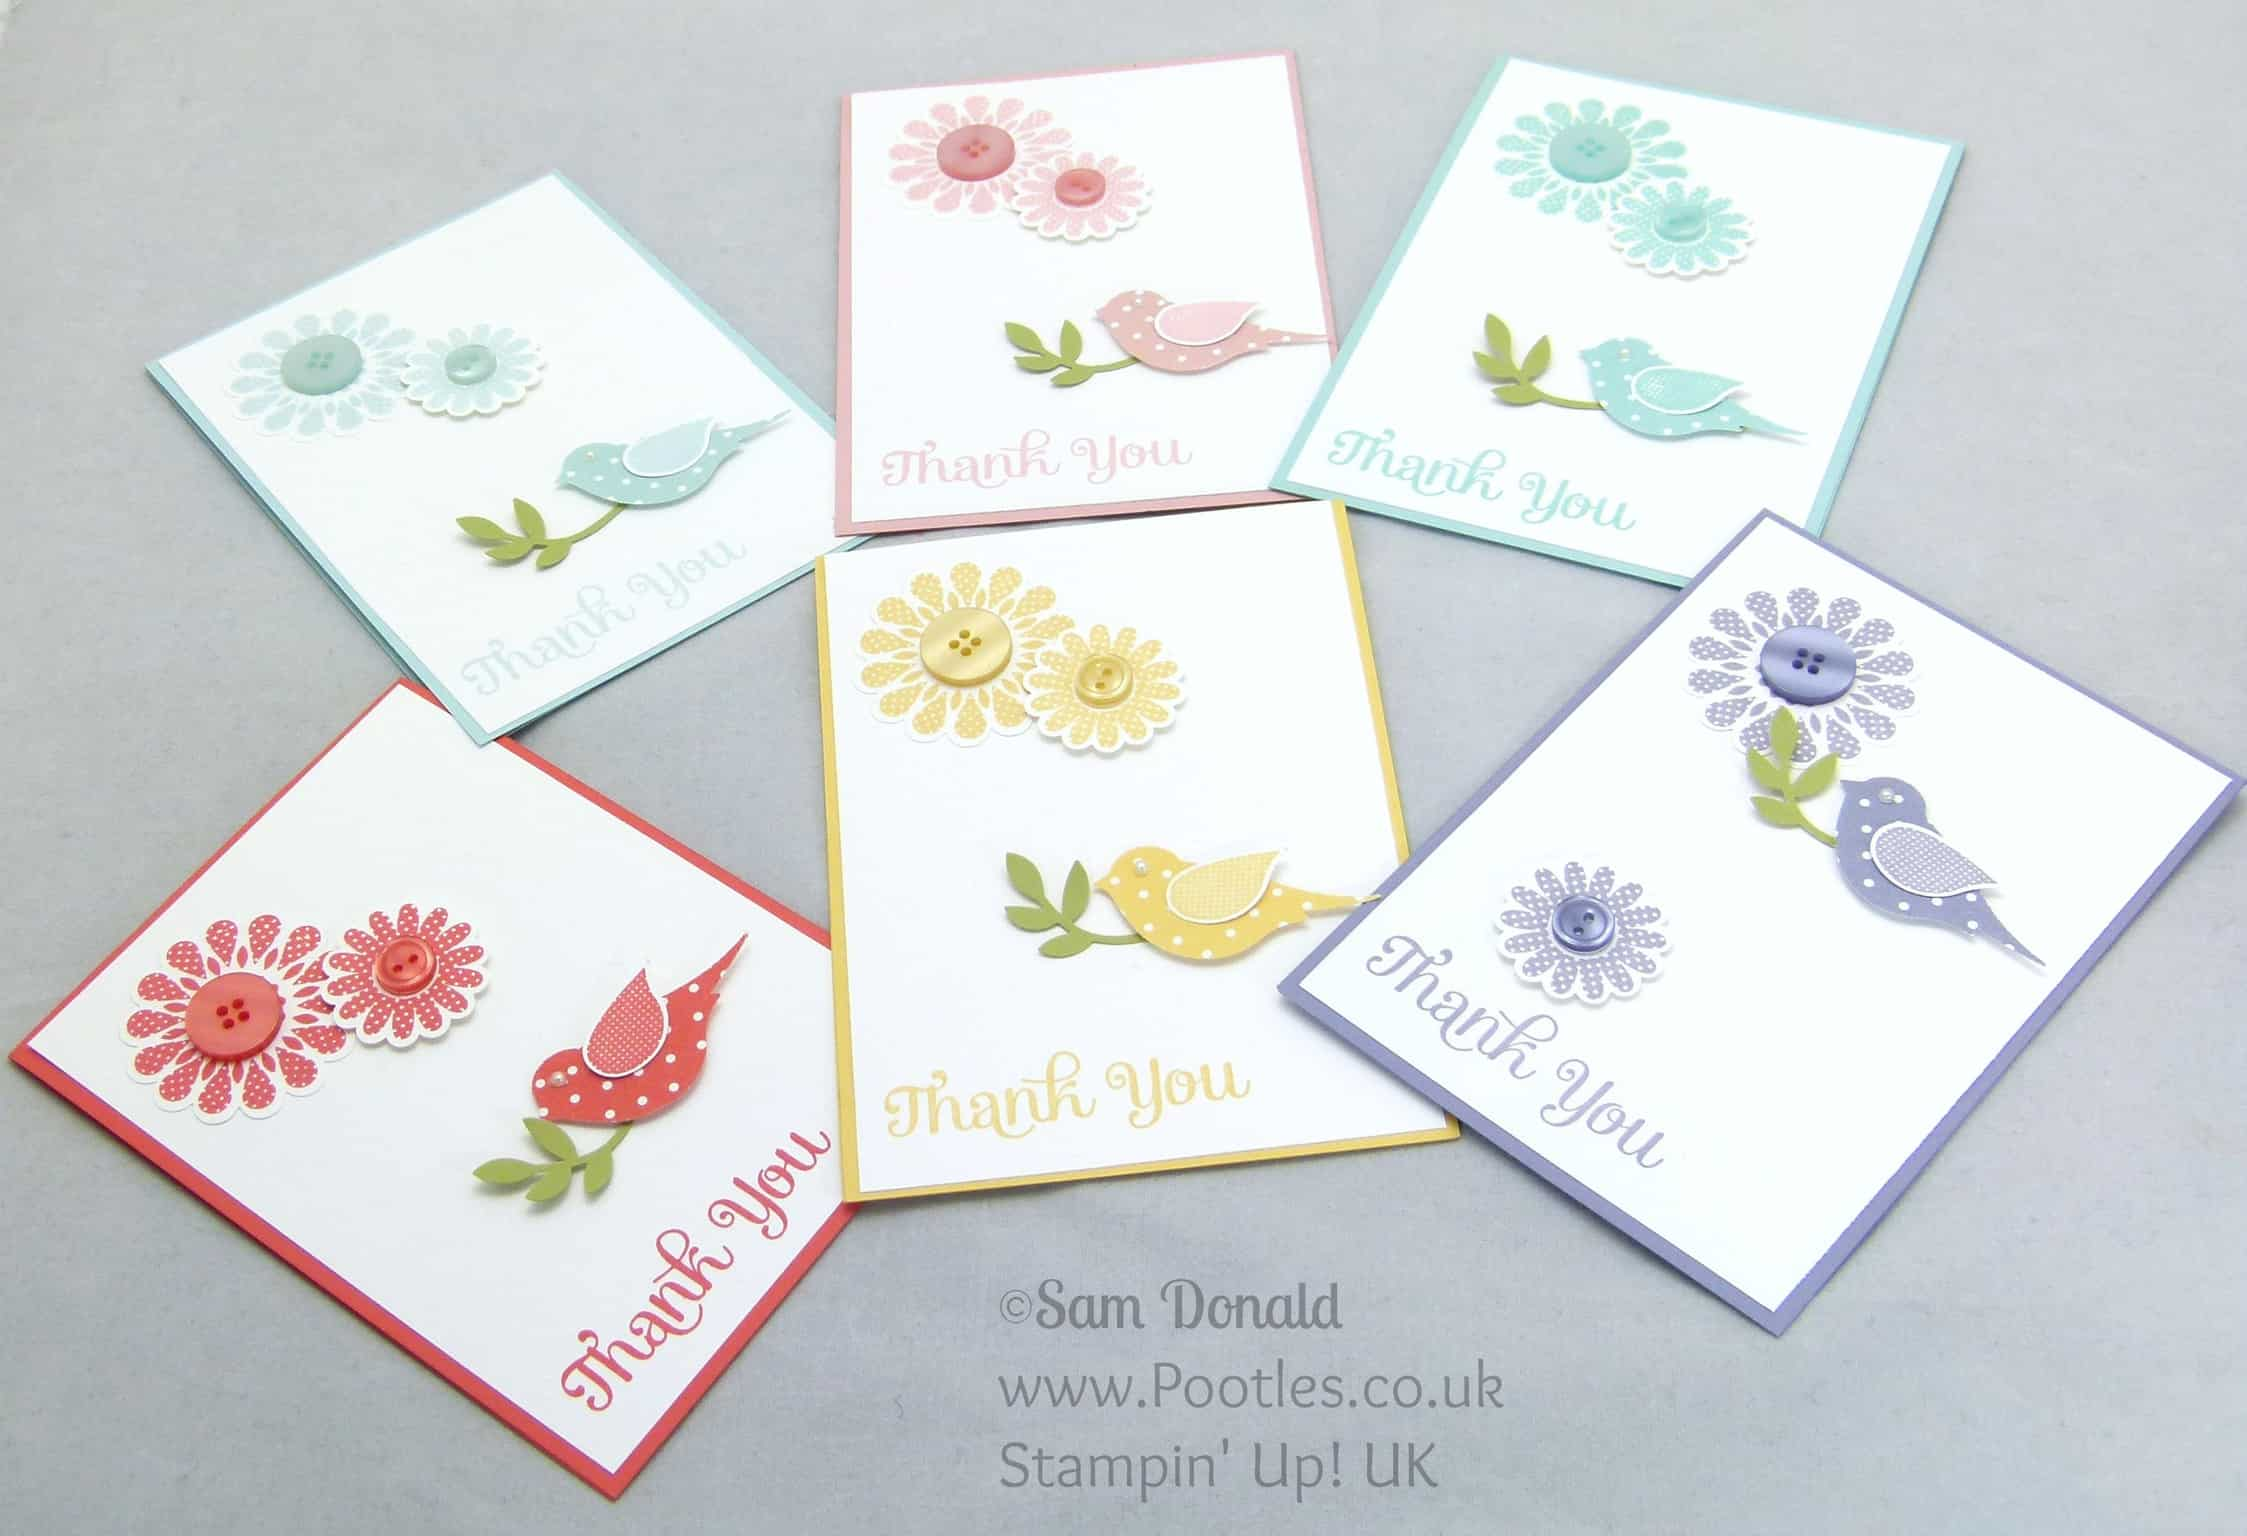 POOTLES Stampin' Up! UK Polka Dot Pieces Thank You Cards Collection